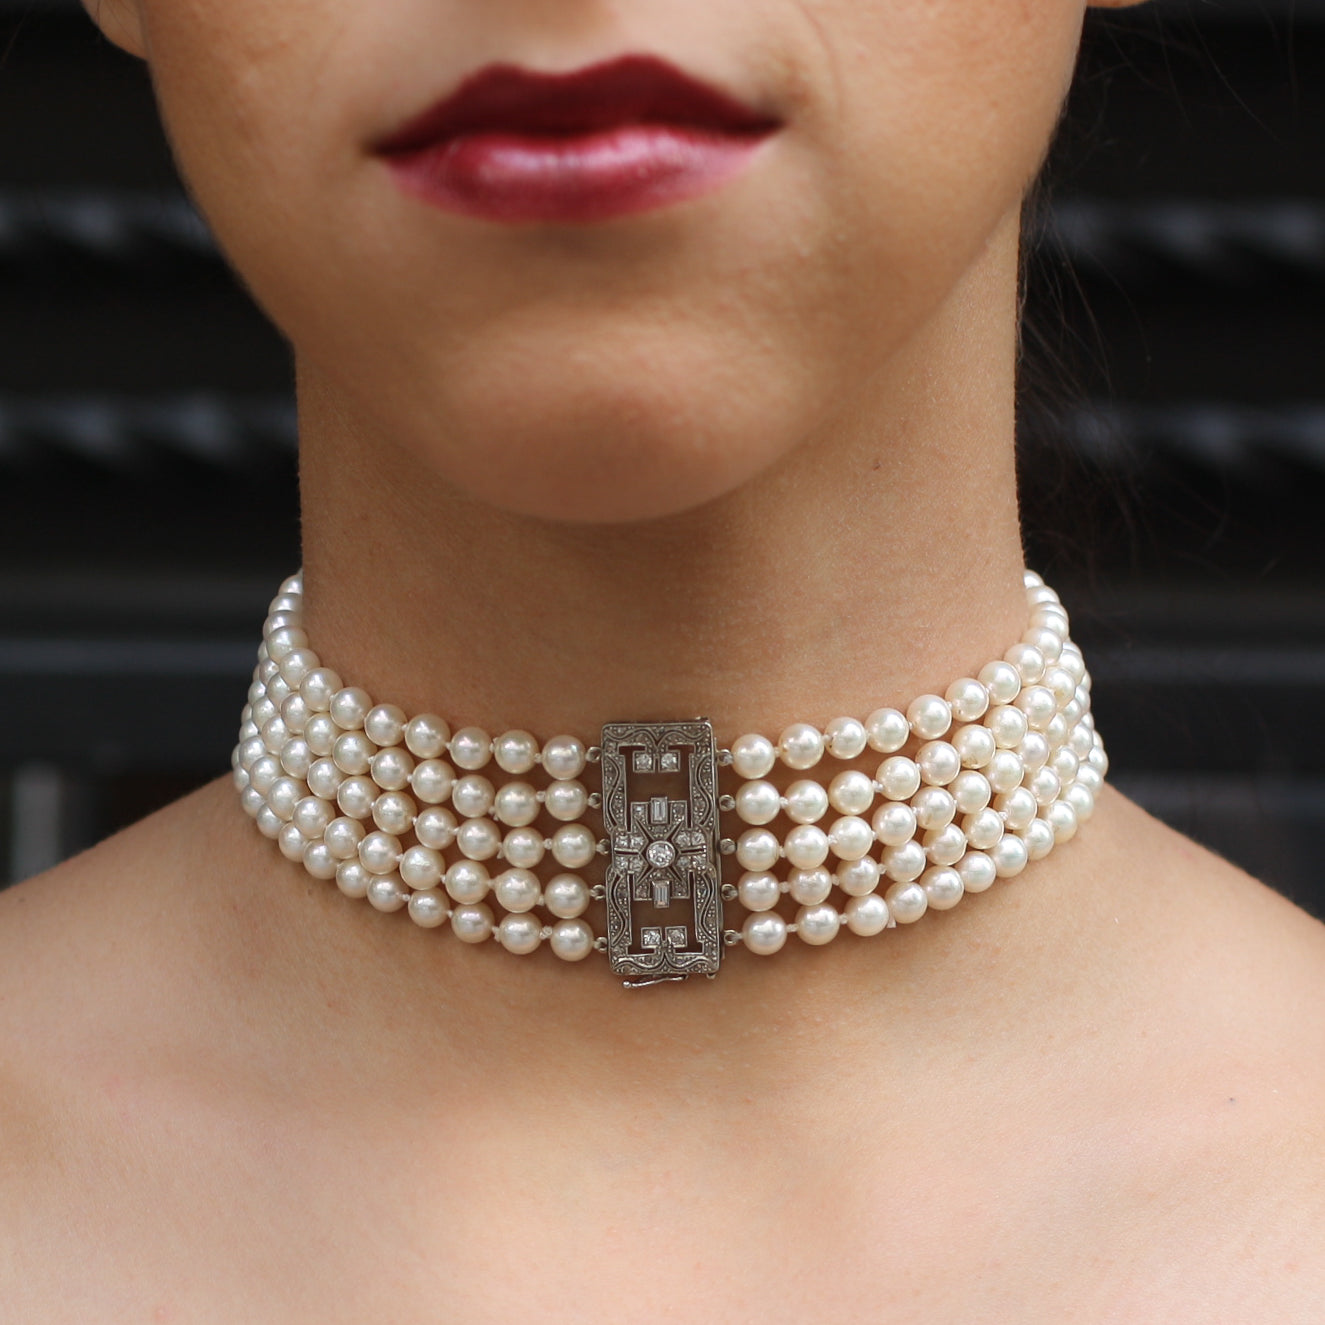 Edwardian Diamond Clasp Pearl Choker Necklace